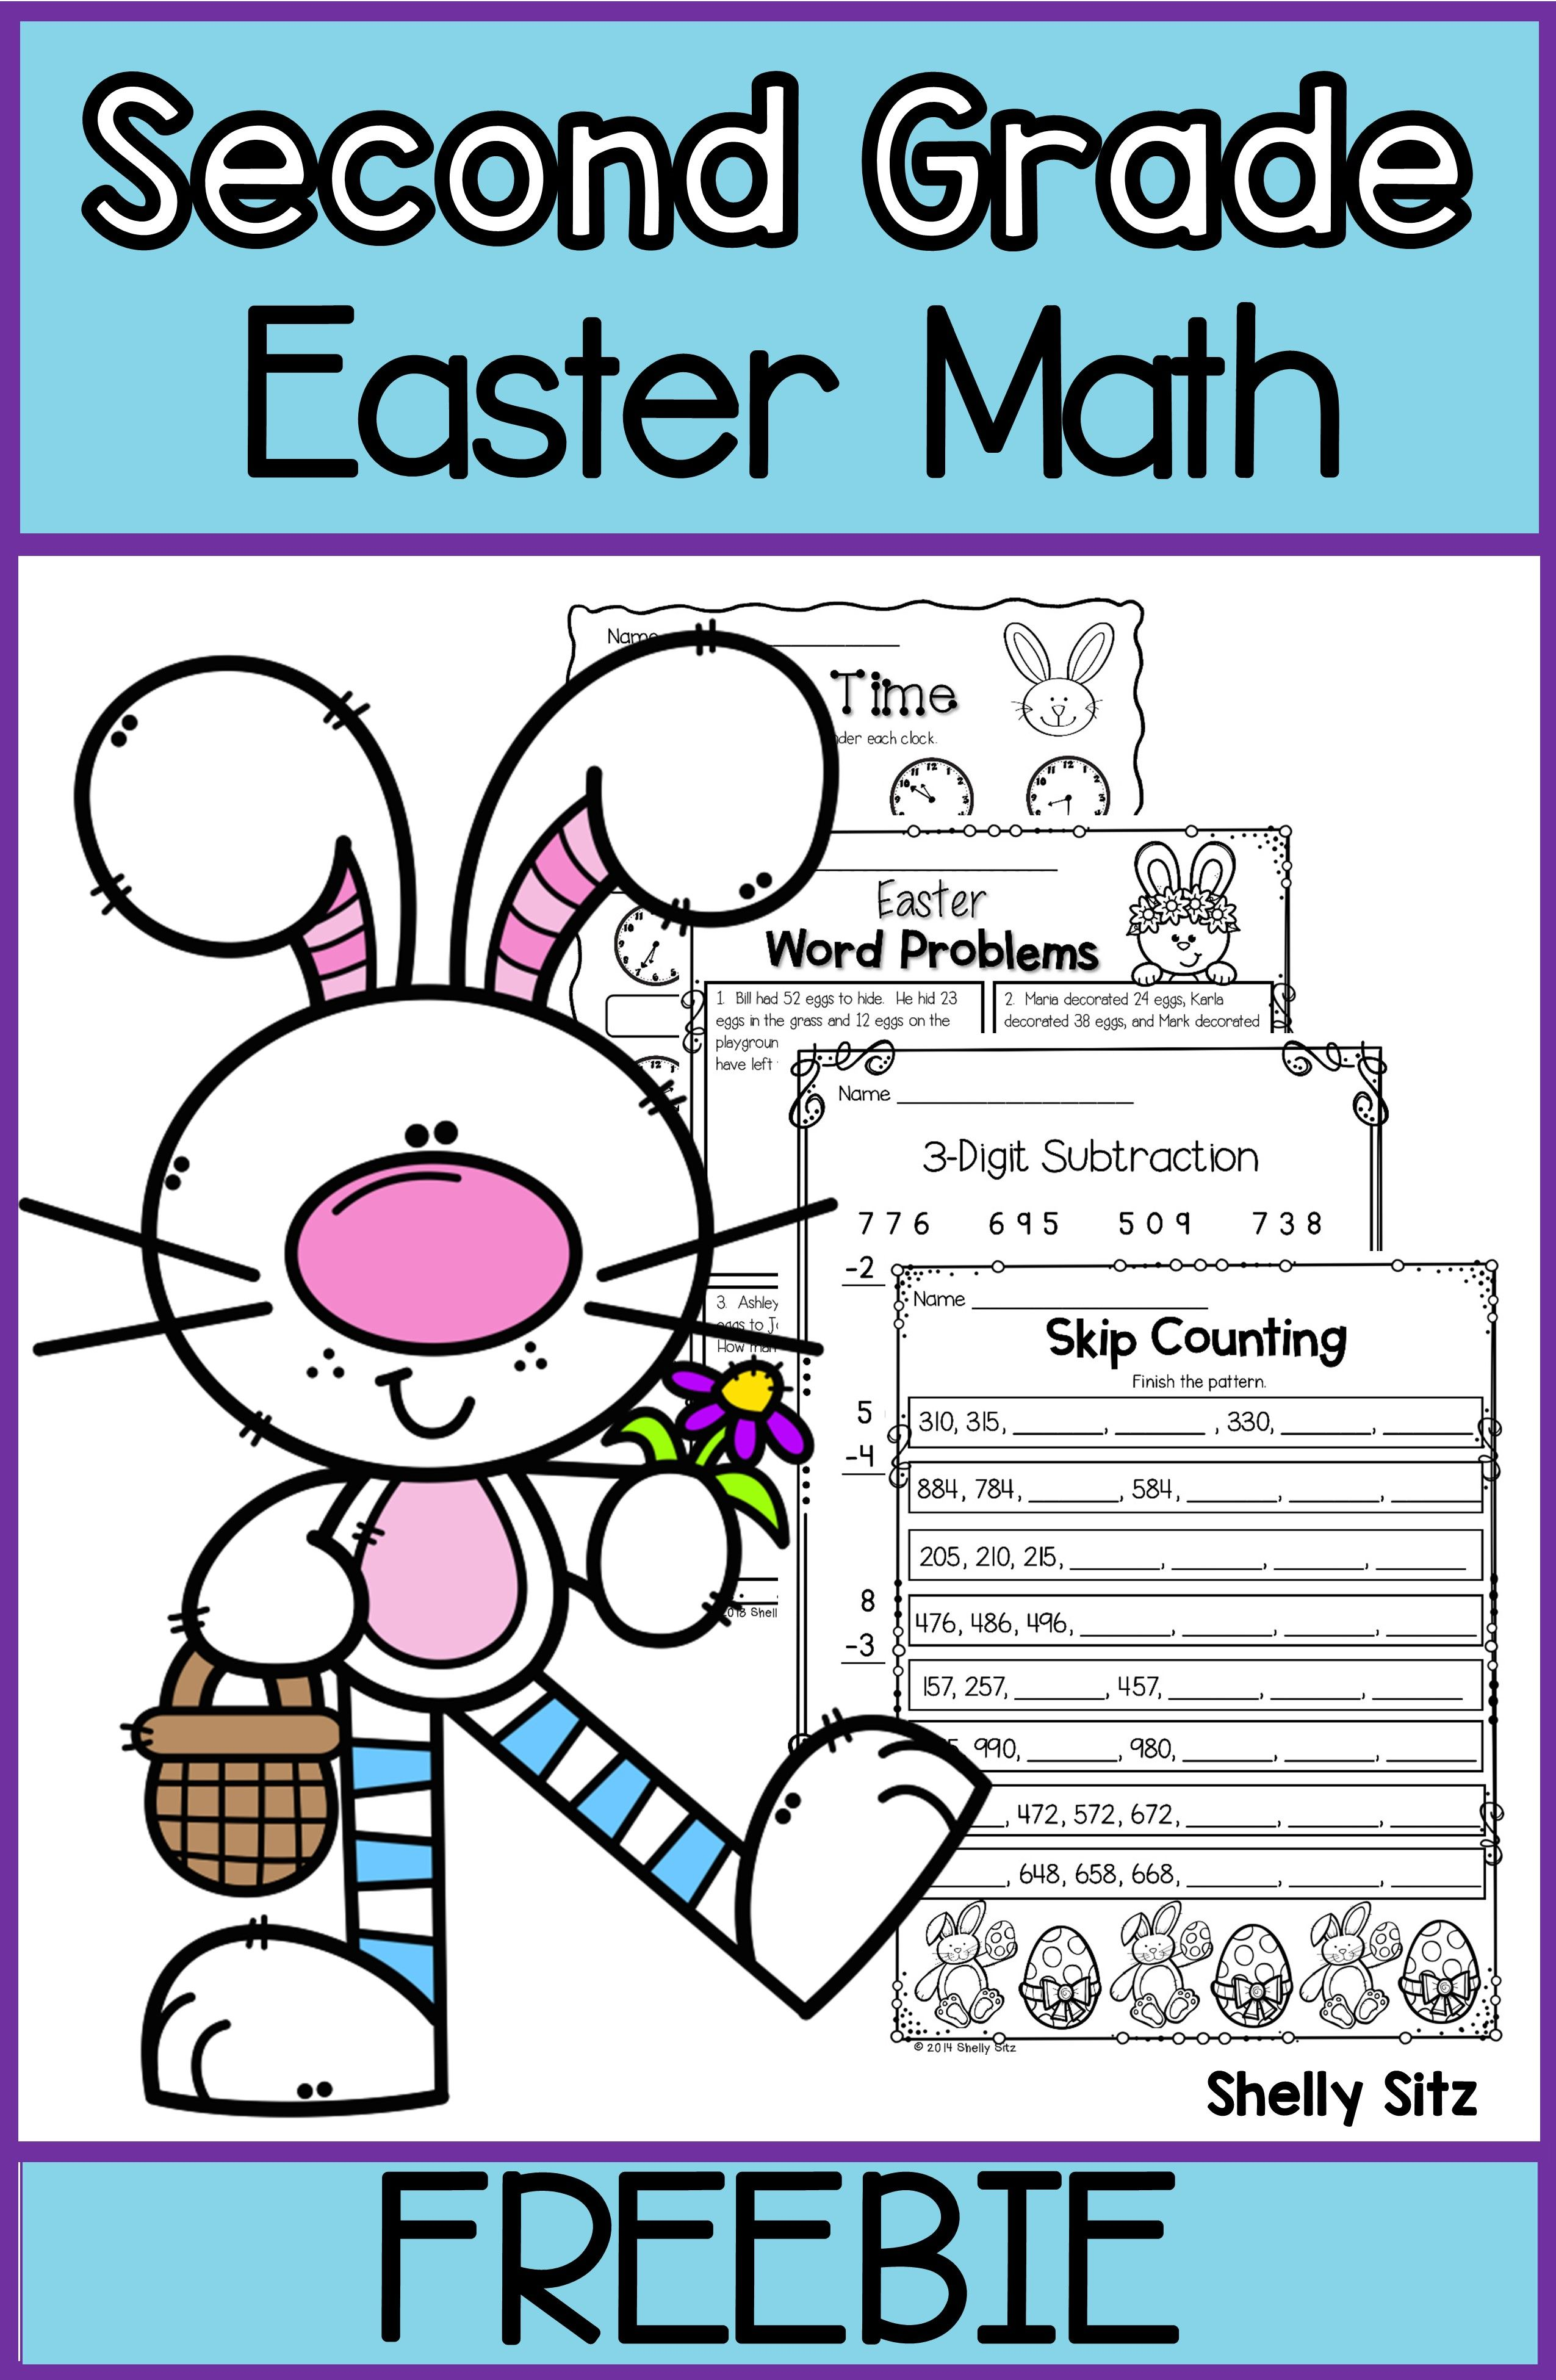 hight resolution of Easter Math for Second Grade   Easter math